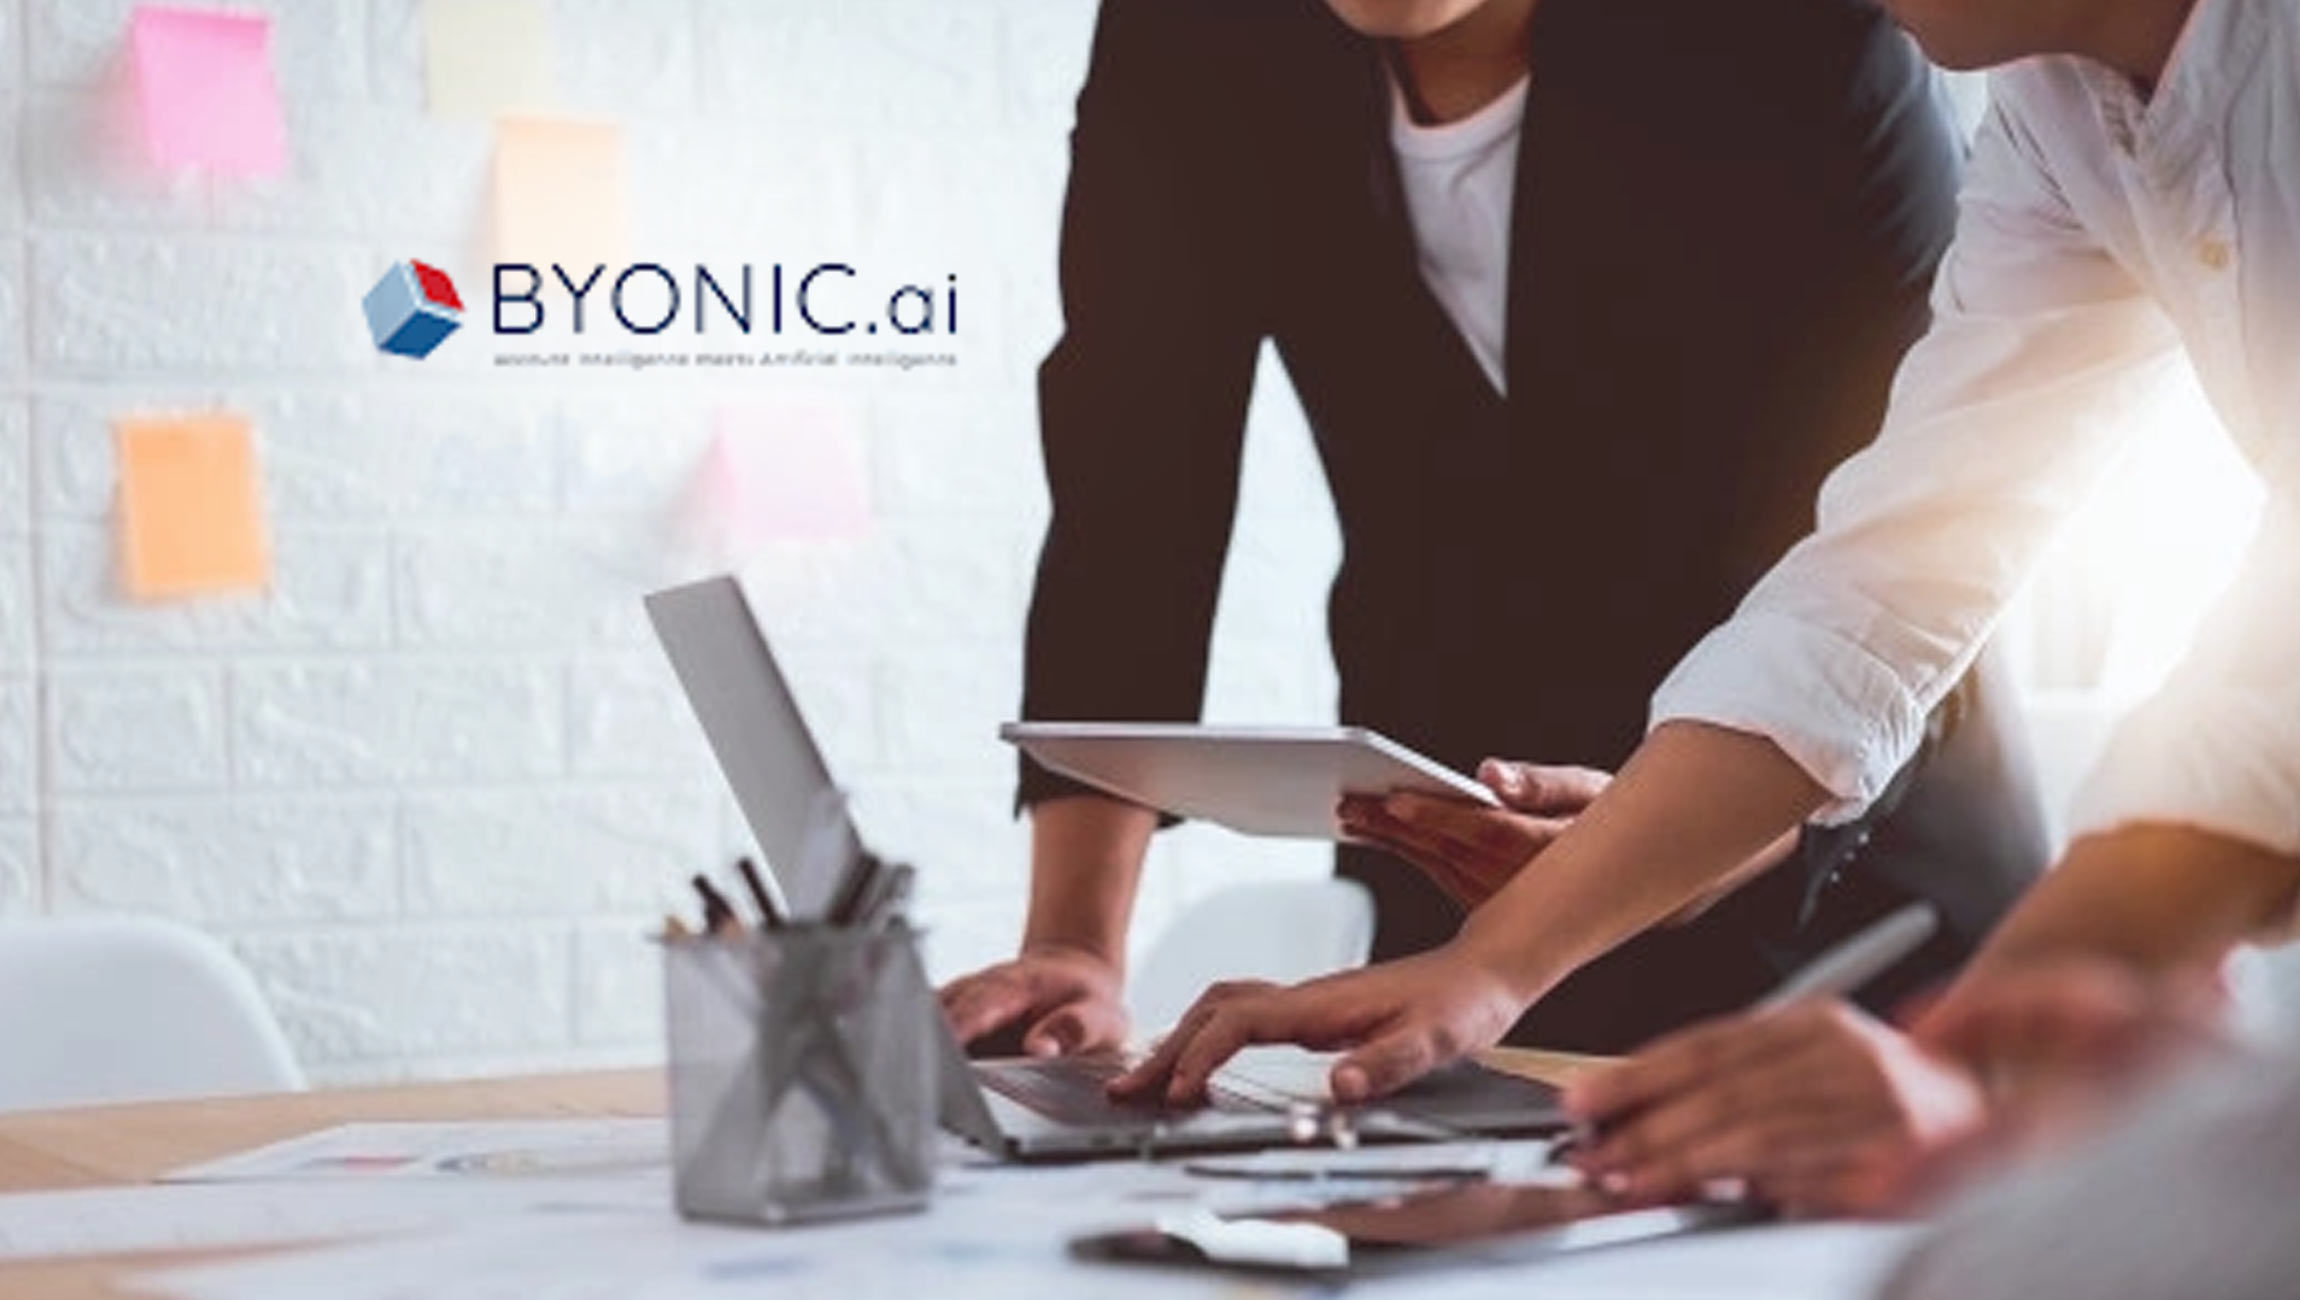 Byonic.ai Redefines the Future of Digital Marketing 6